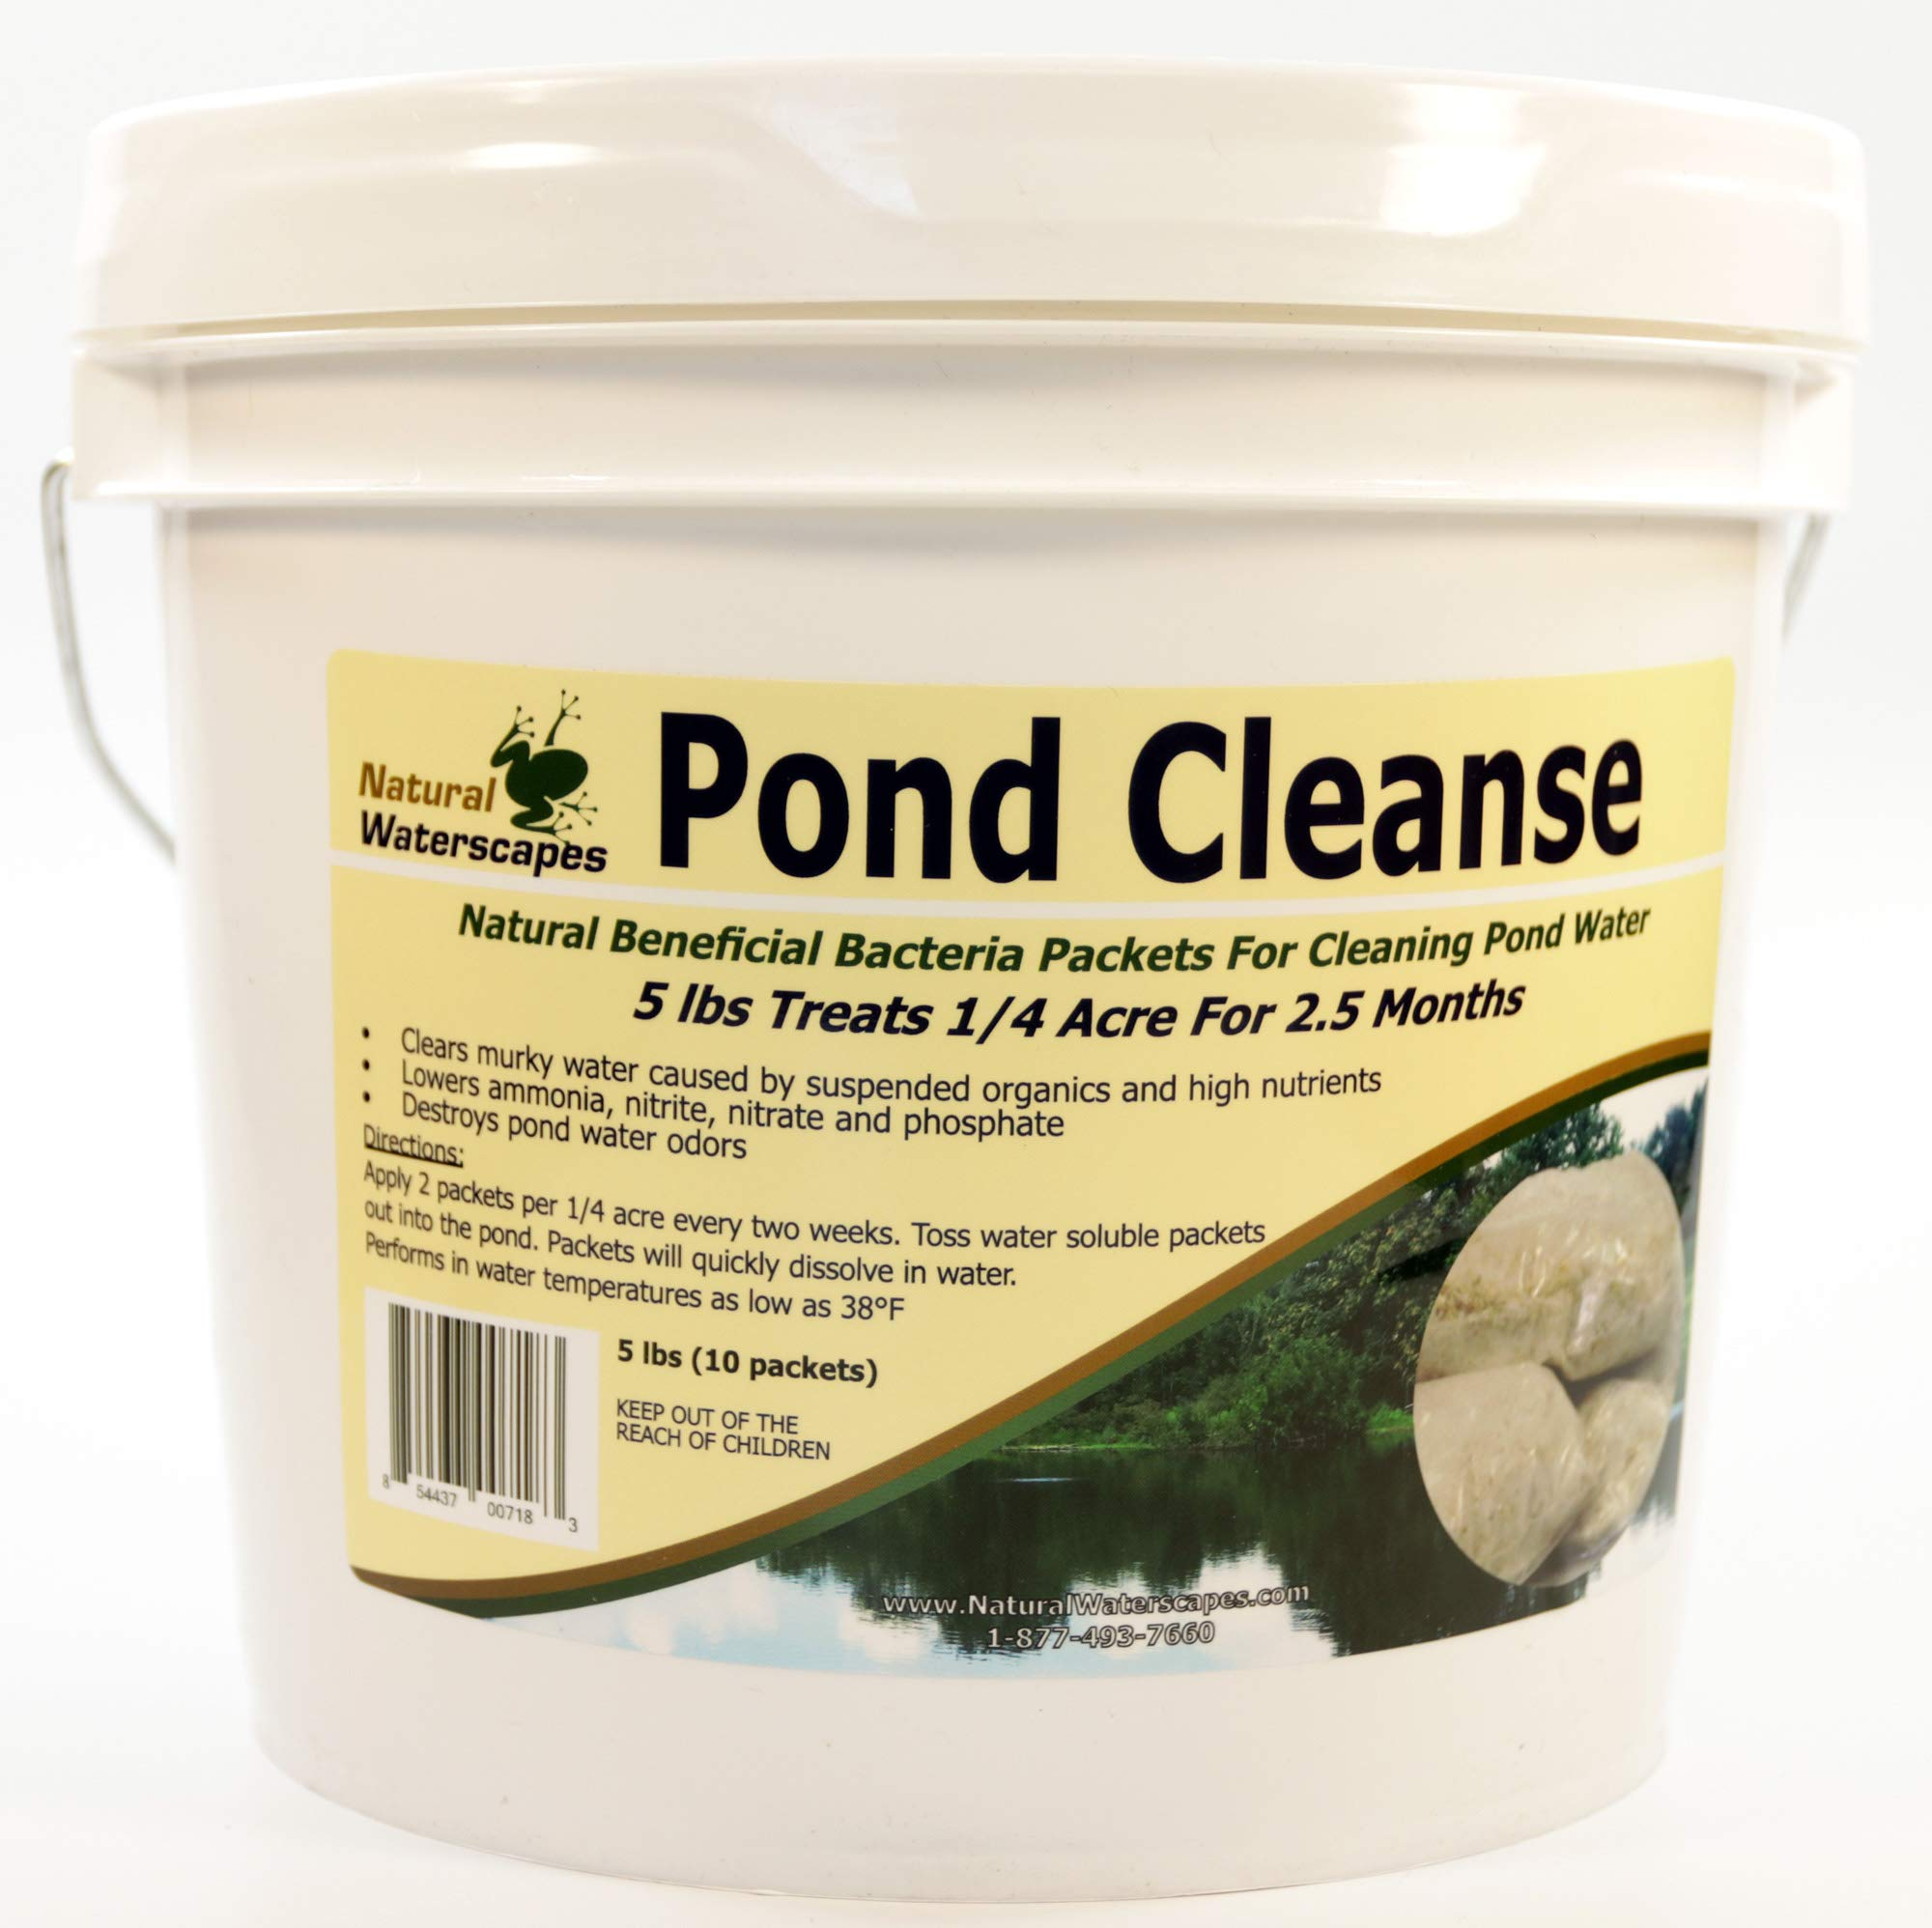 Pond Cleanse Bacteria Packets 5 lb